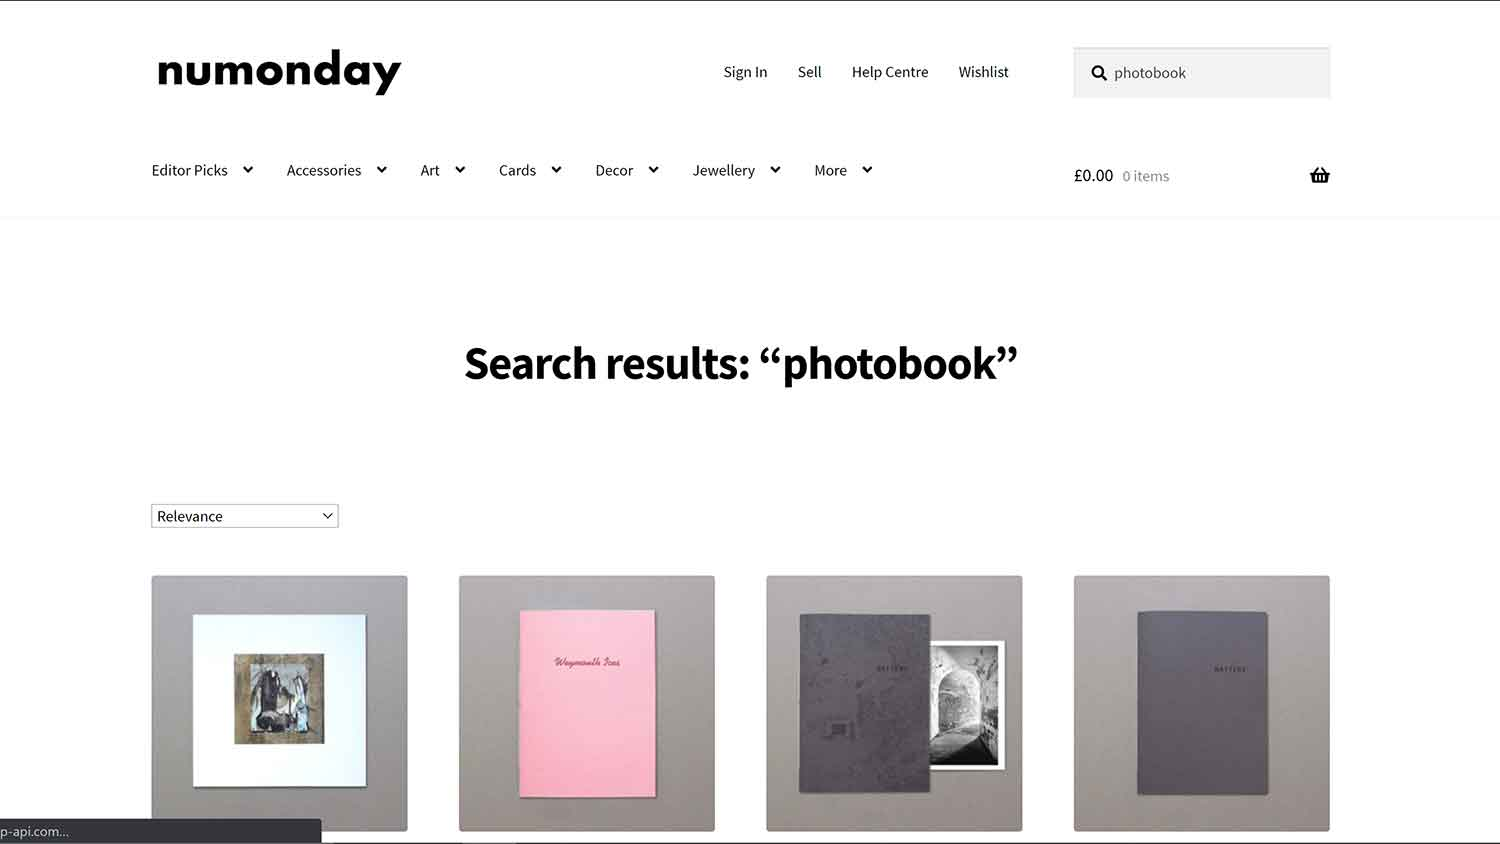 how to sell zines online, numonday